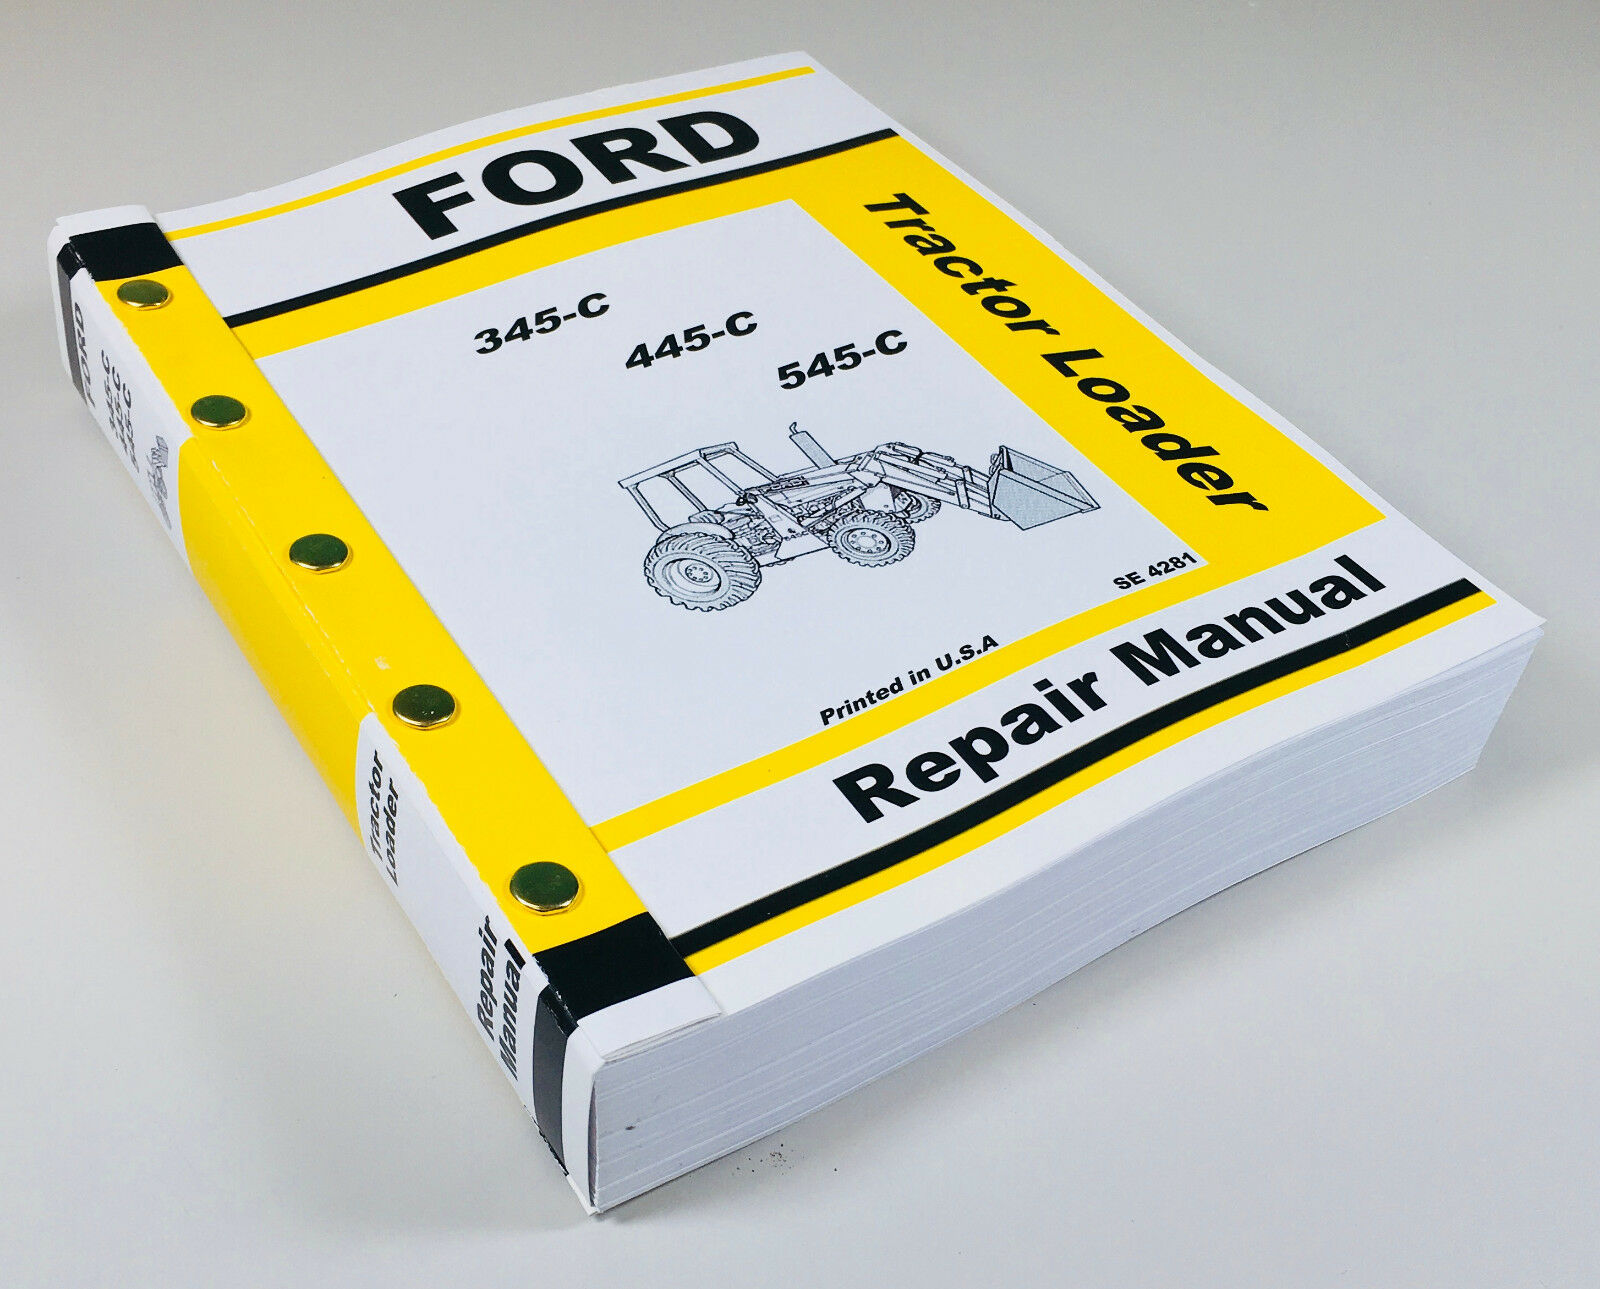 This is a new reproduction of the Factory Repair Manual